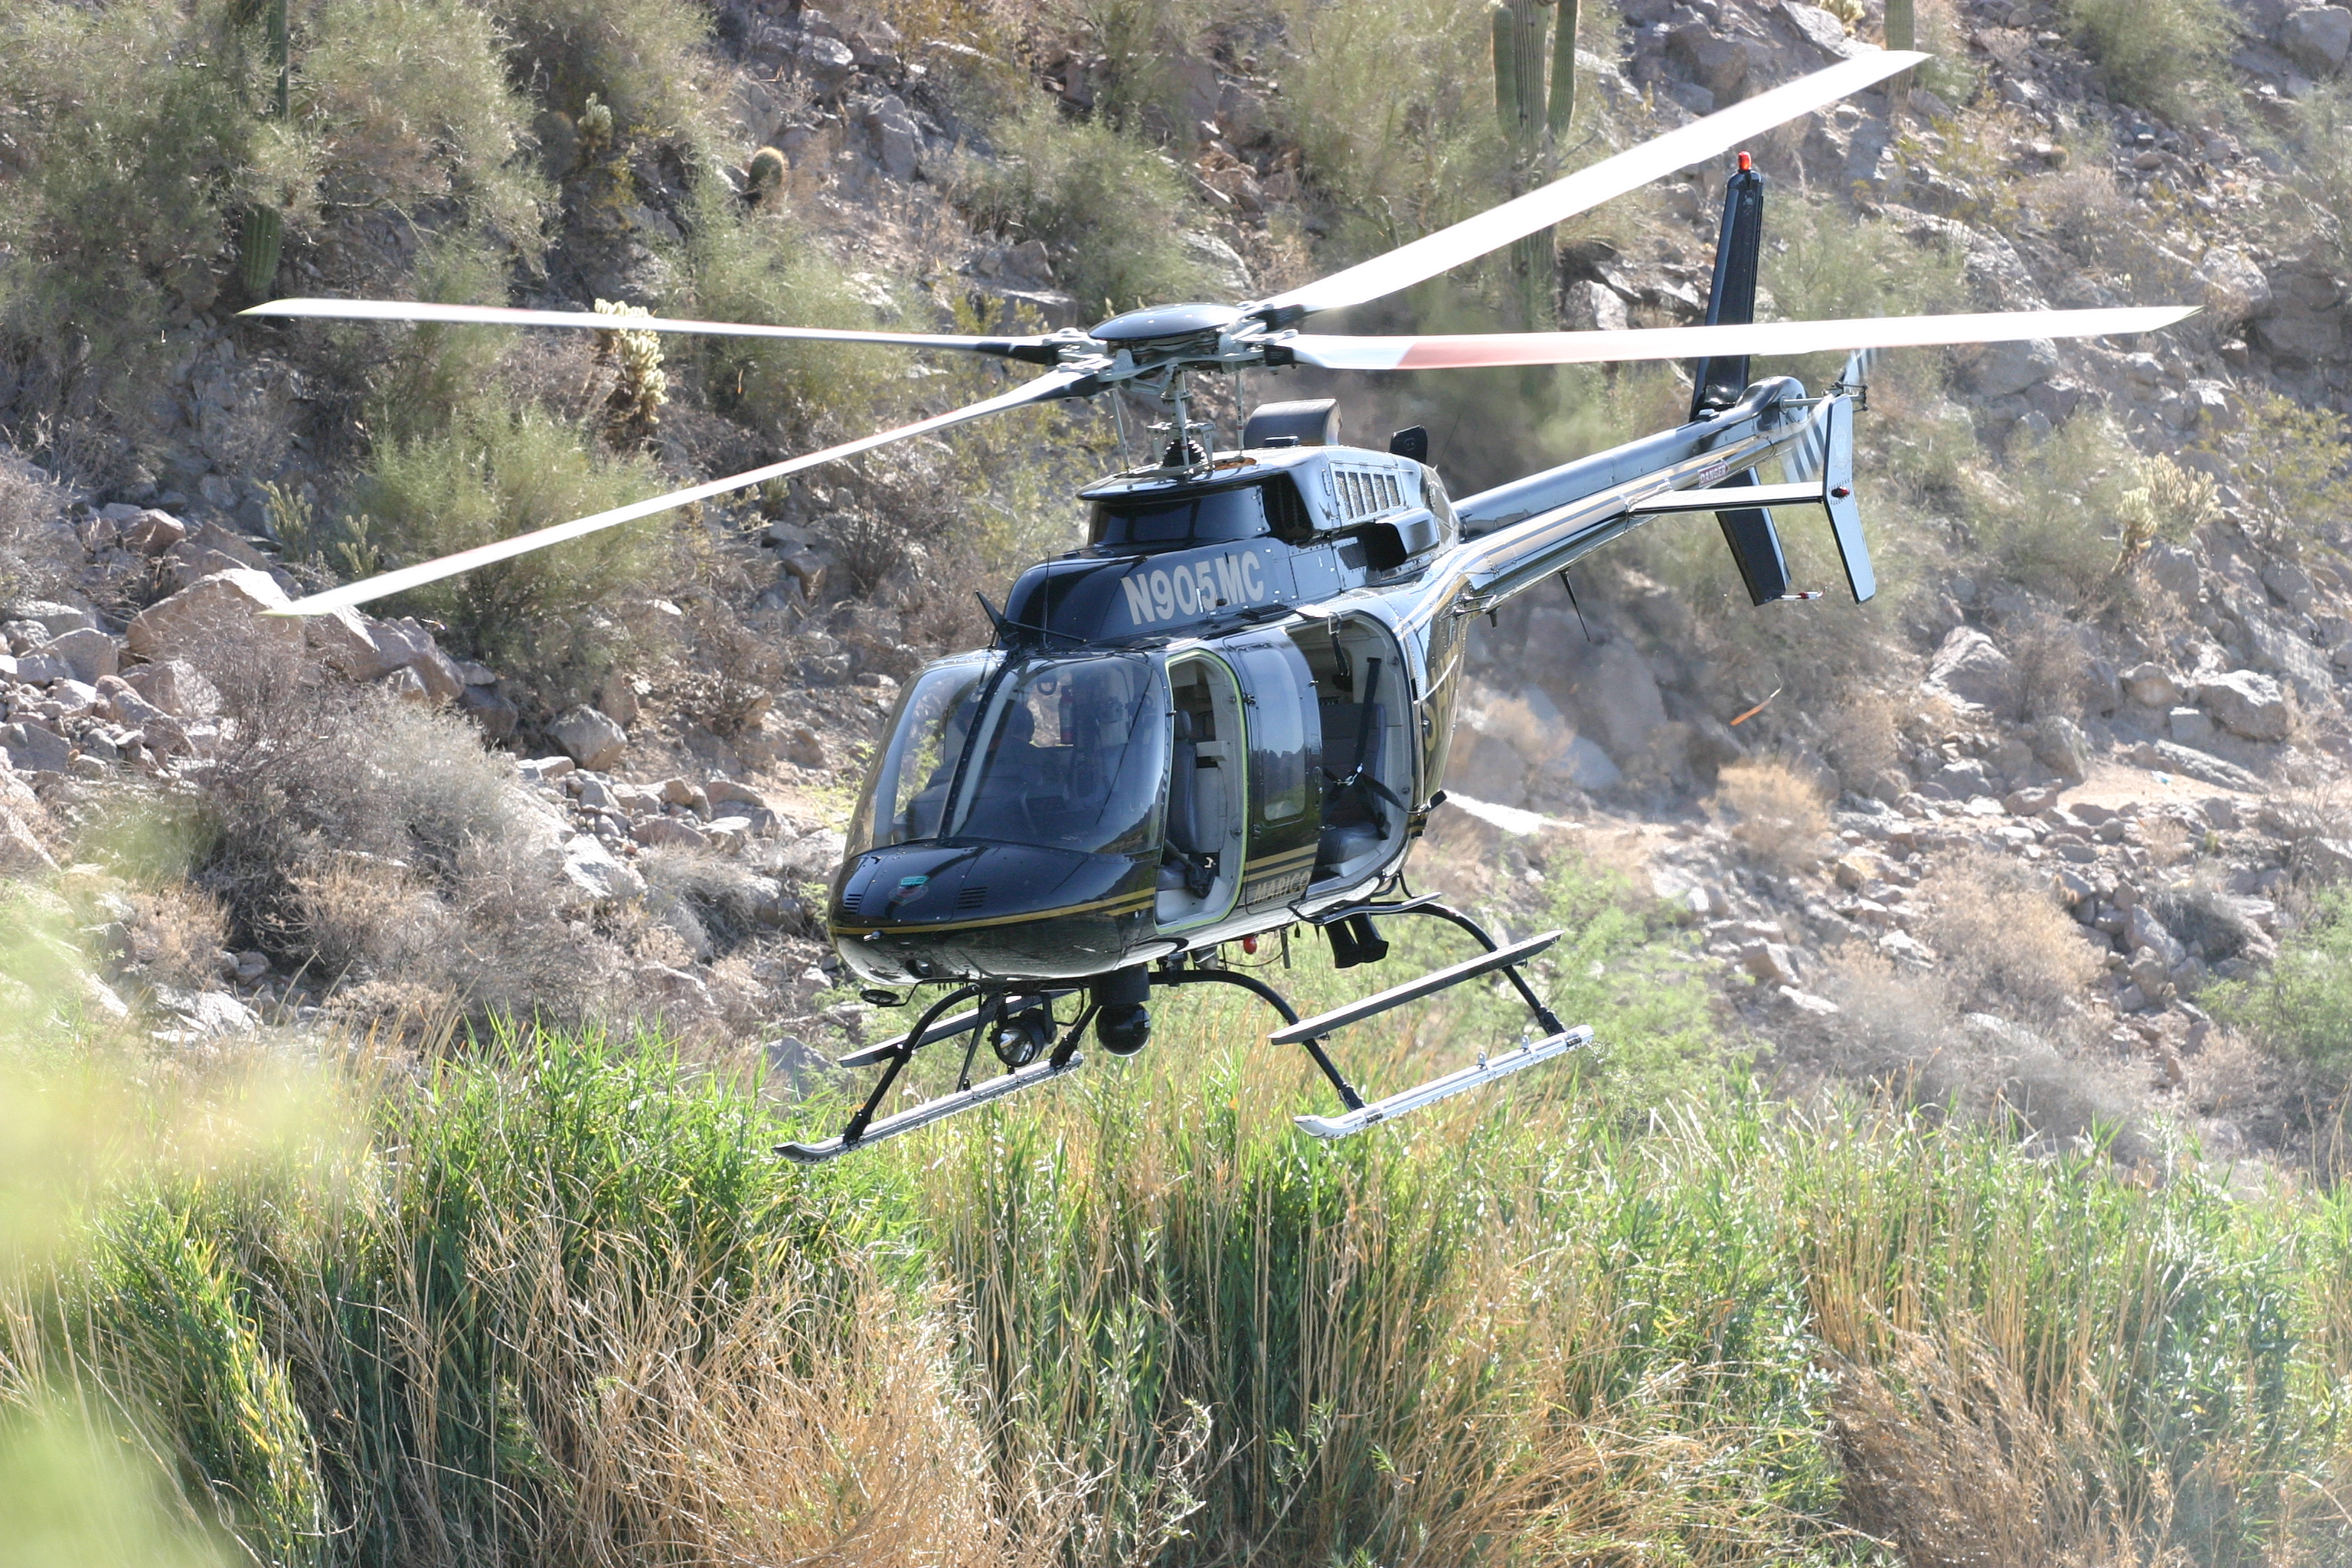 Maricopa County Sheriff's Office has its own helicopters for search and rescue operations, including some rescues of recent border crossers who call 911 dispatchers in the county.